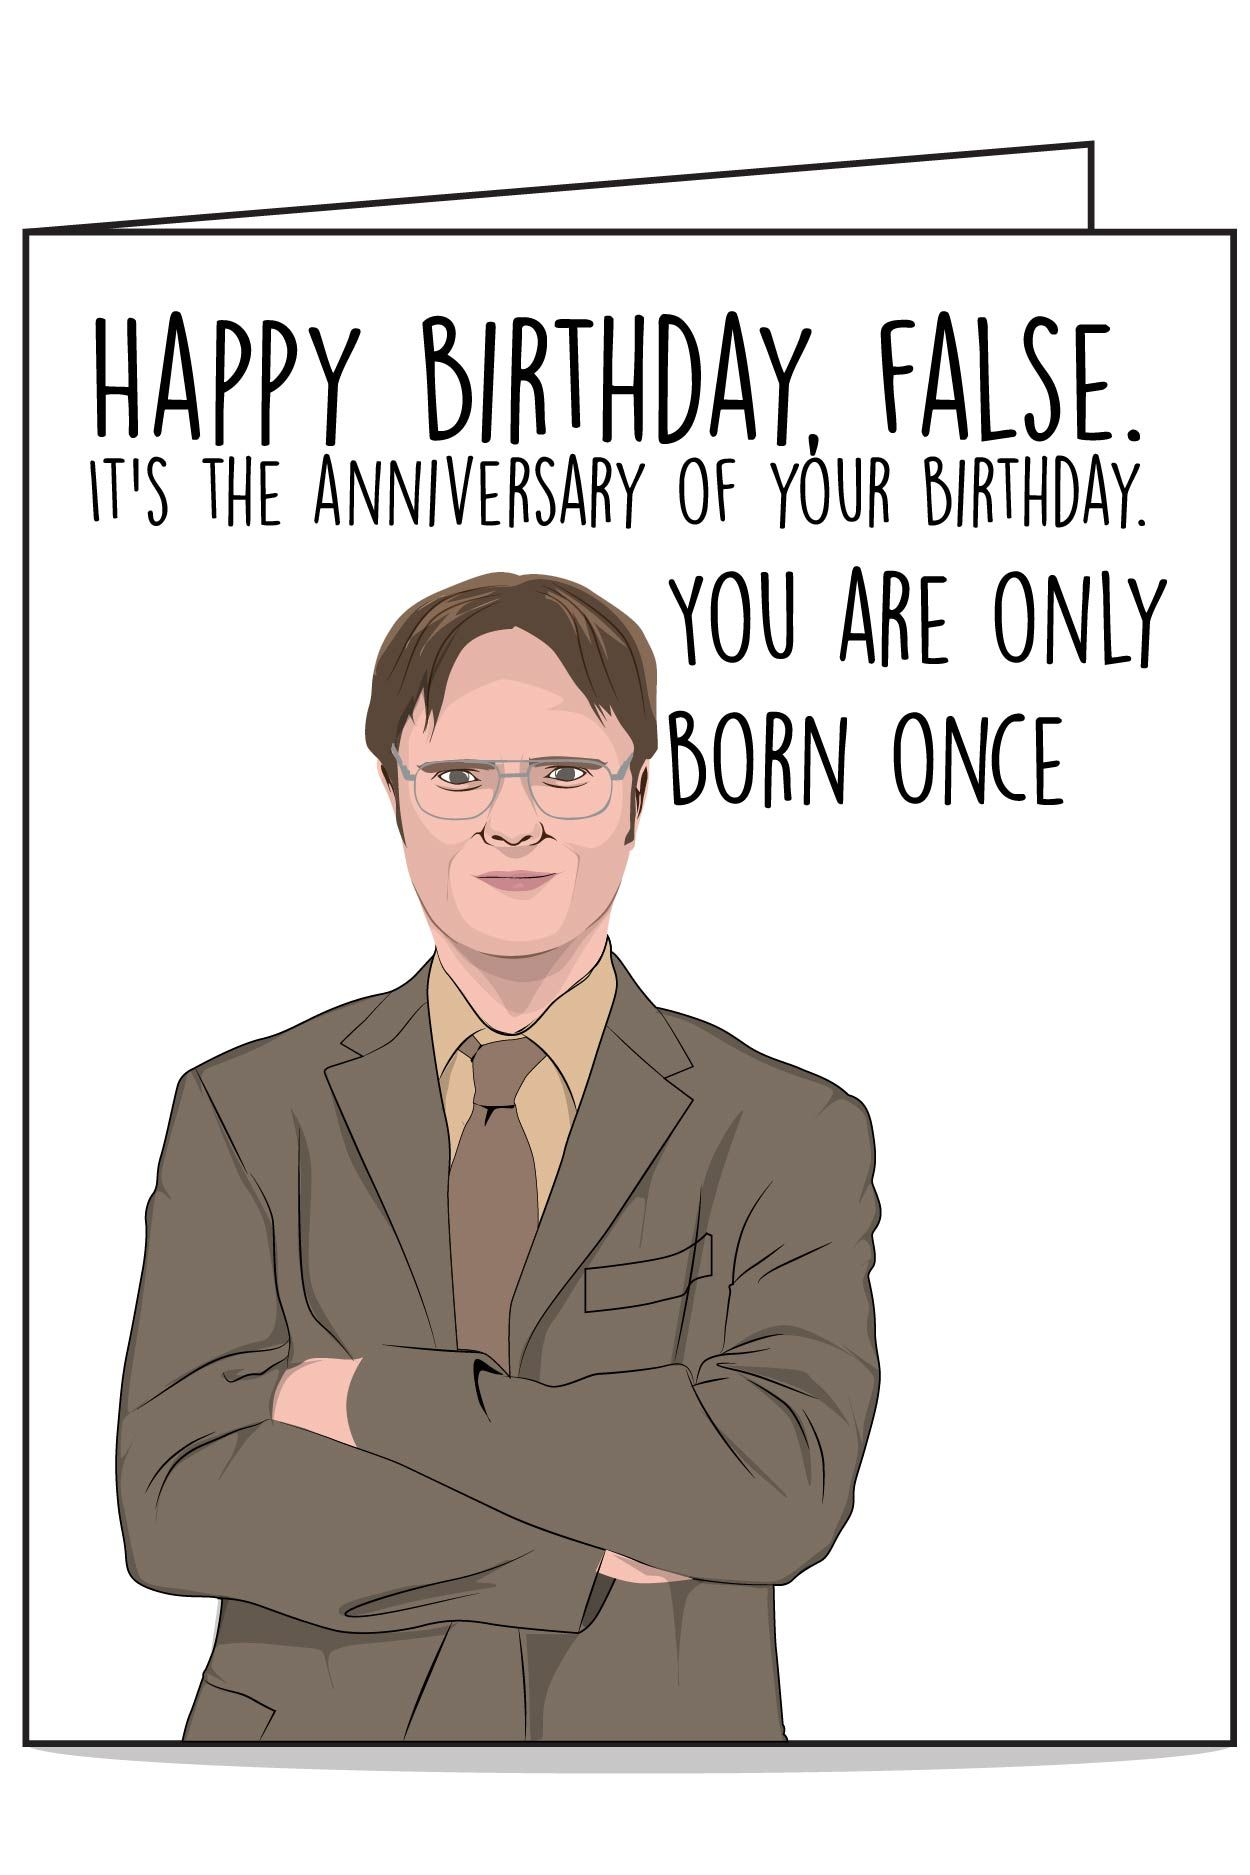 Dwight The Office Birthday Card | Office birthday, Office ...